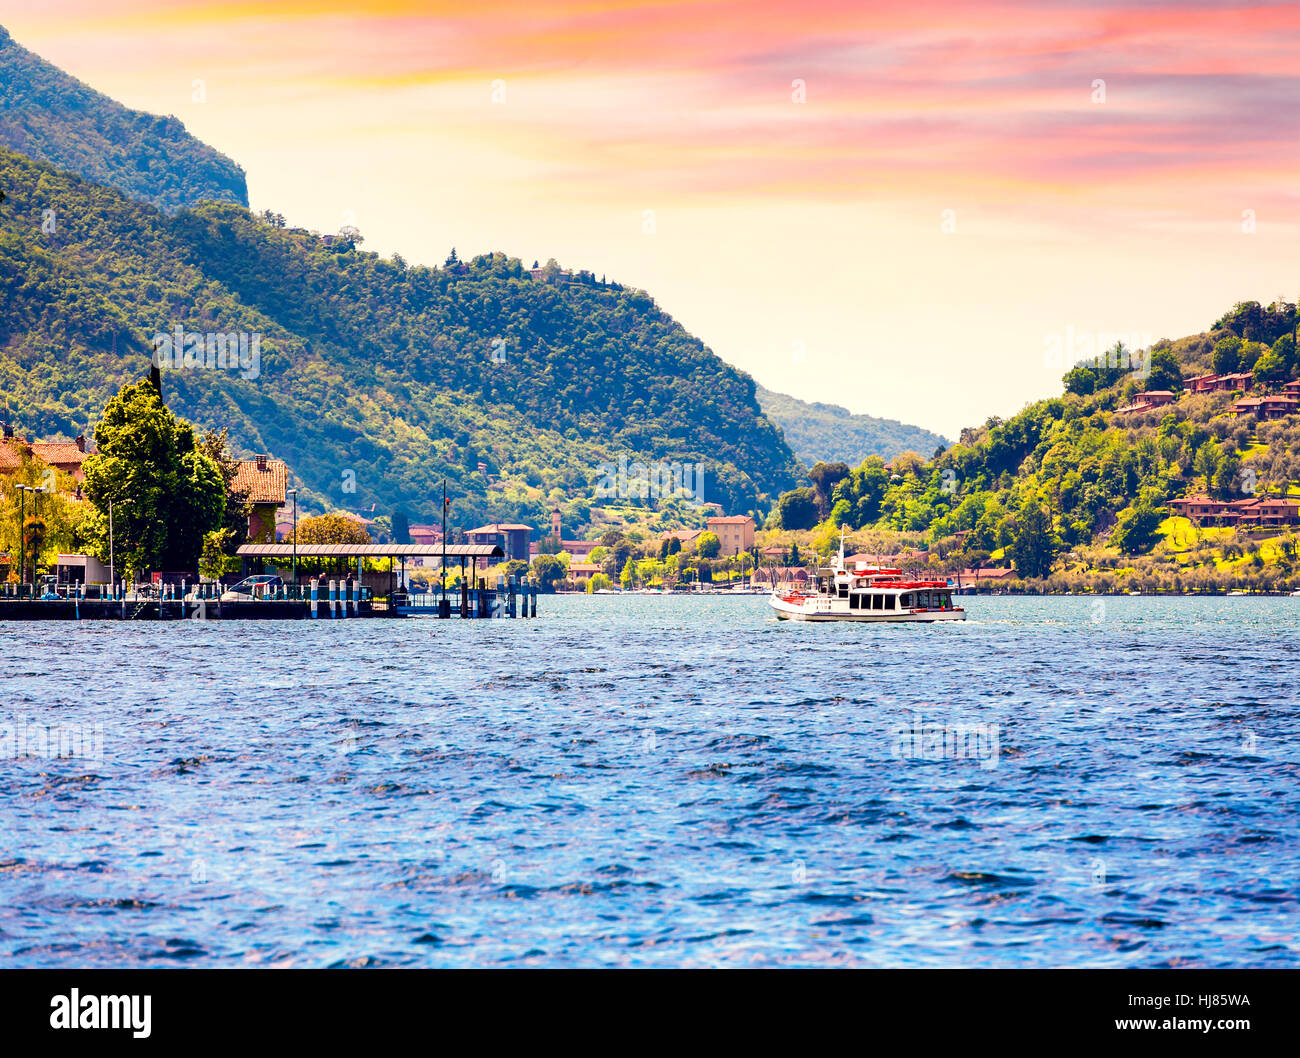 View of the Lake Iseo, colorful summer morning. Region Lombardy, Province Brescia (BS) in Iseo Lake. Italy, Europe. - Stock Image